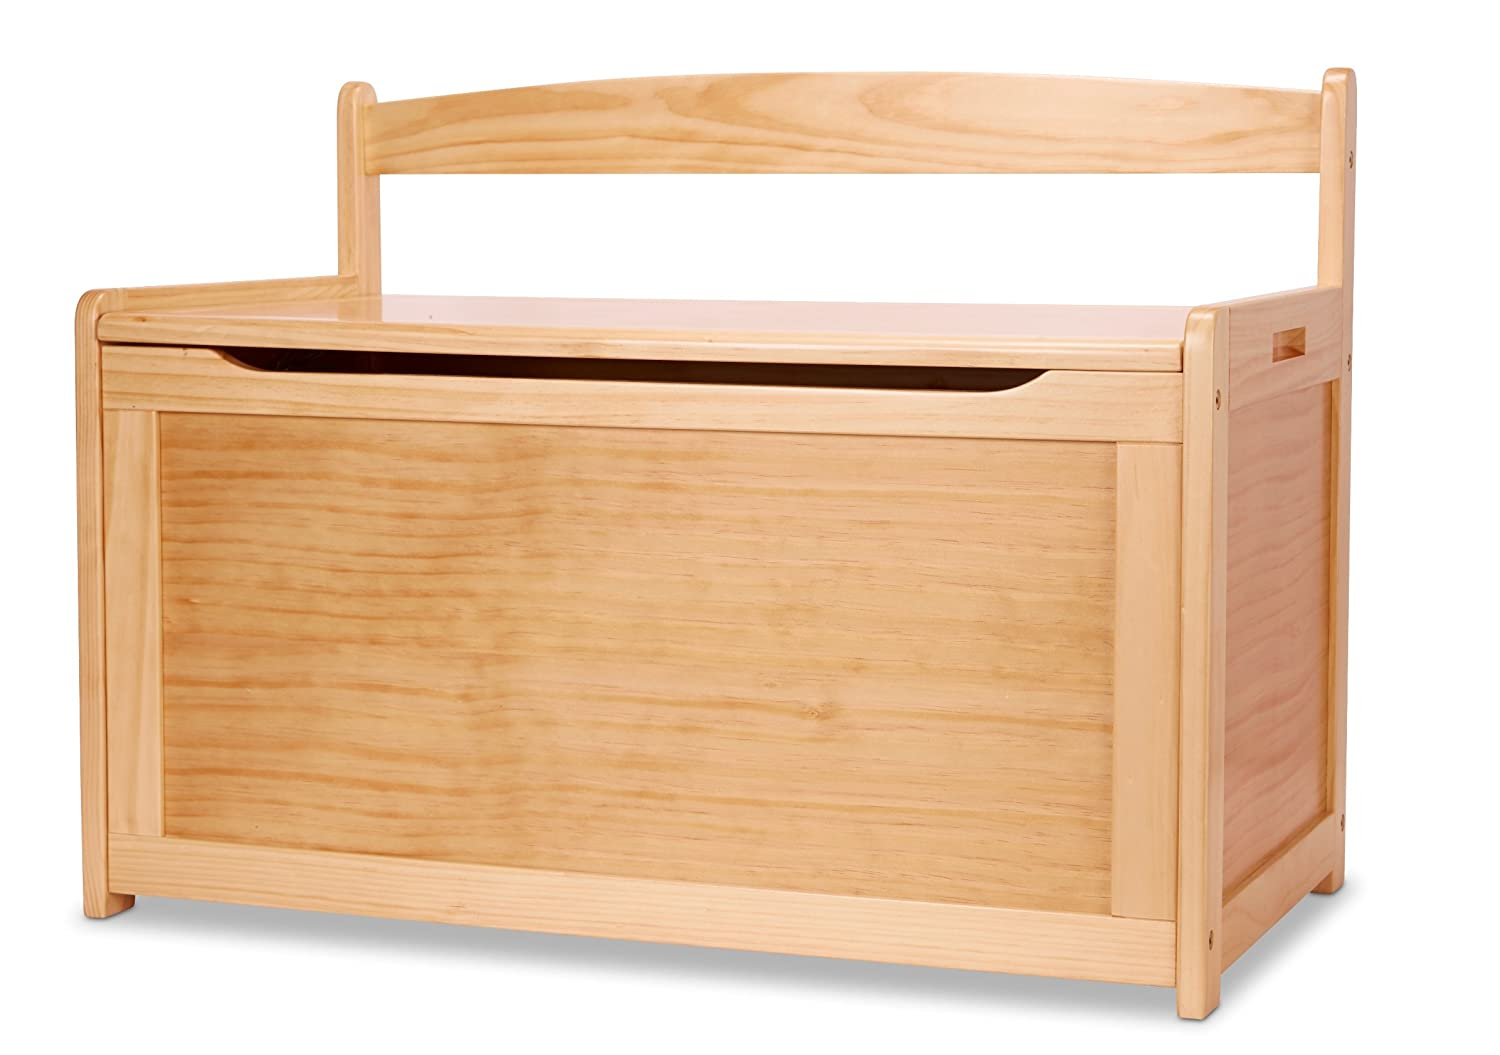 Melissa & Doug Toy Chest - Wood Grain Children's Furniture Melissa and Doug 30227